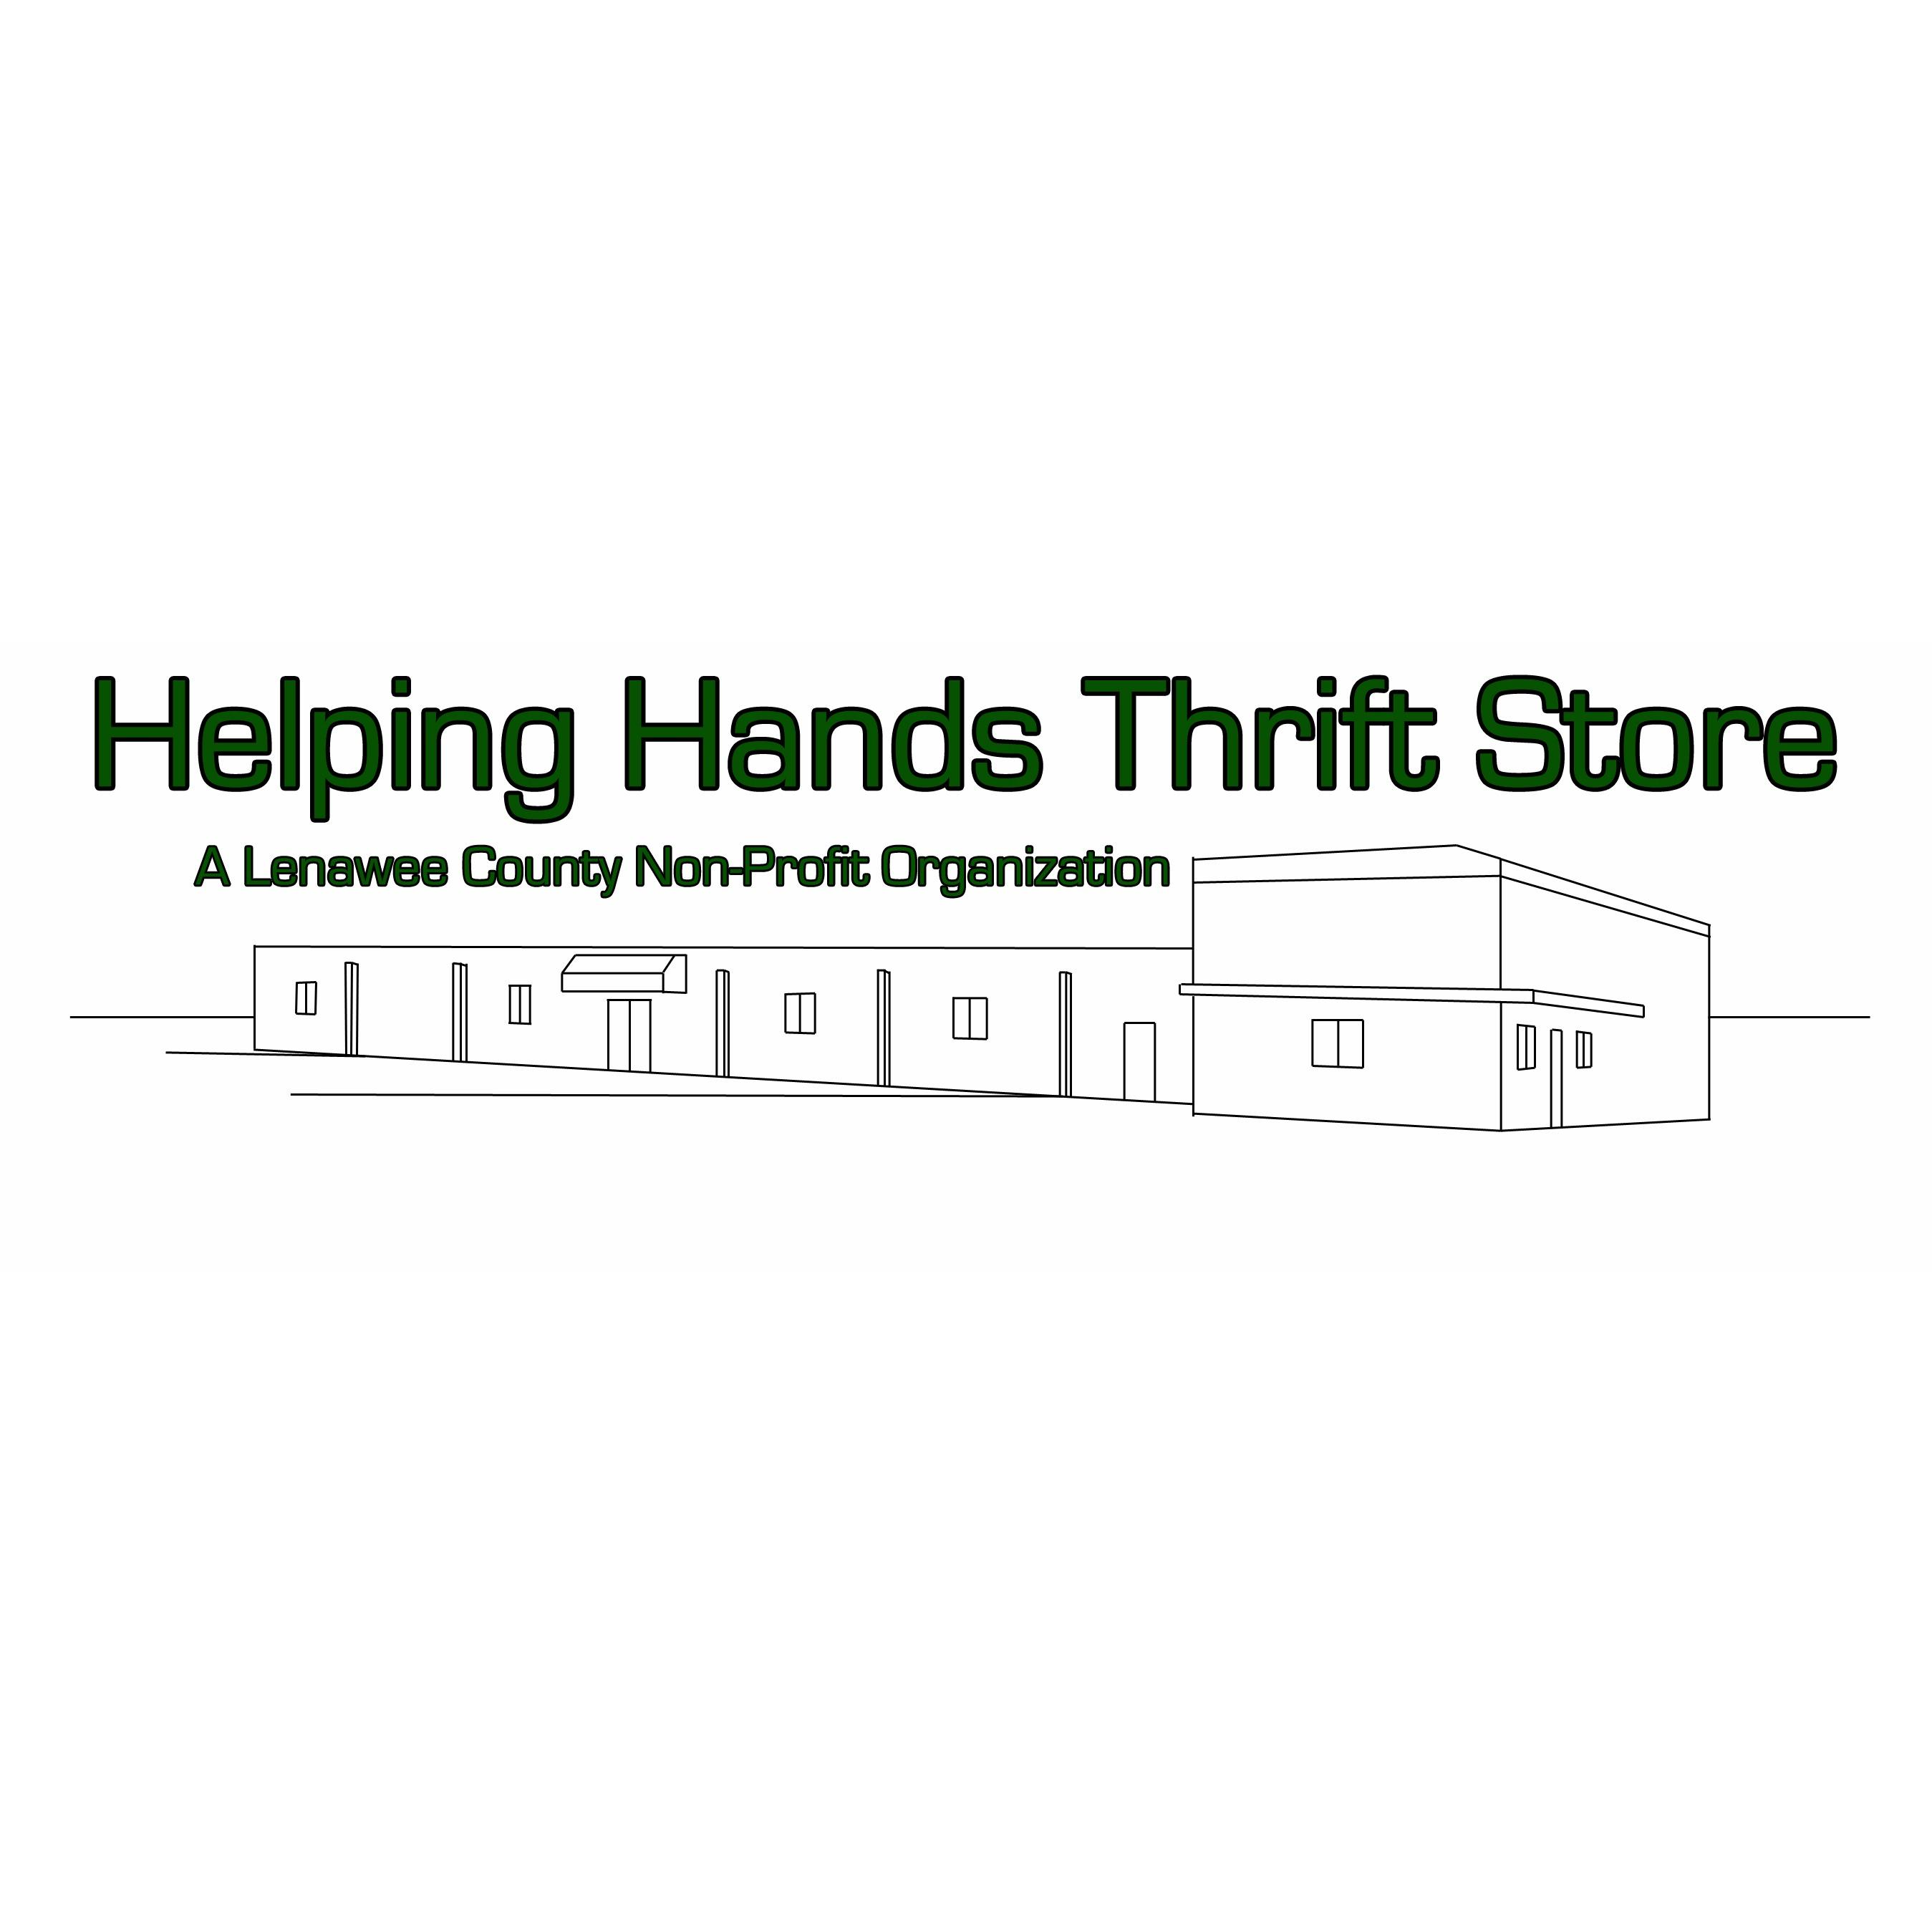 Helping Hands Thrift Store